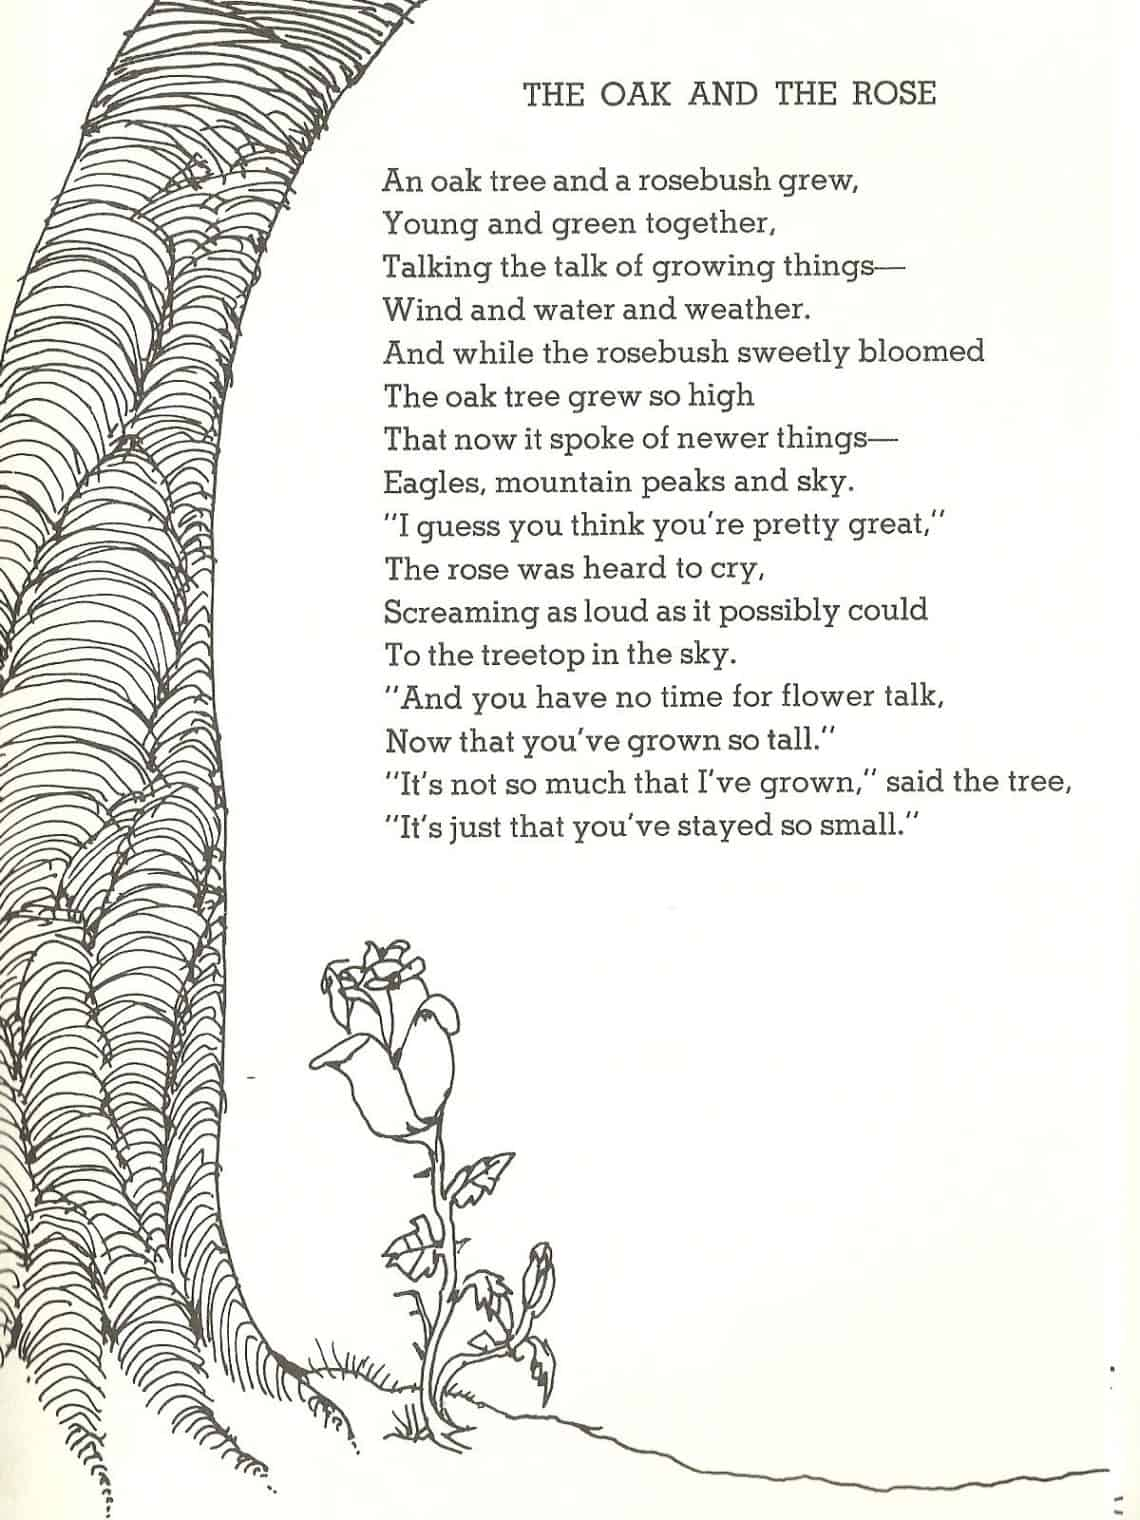 This poem from Shel Silverstein reminds us that friendships can change over time.